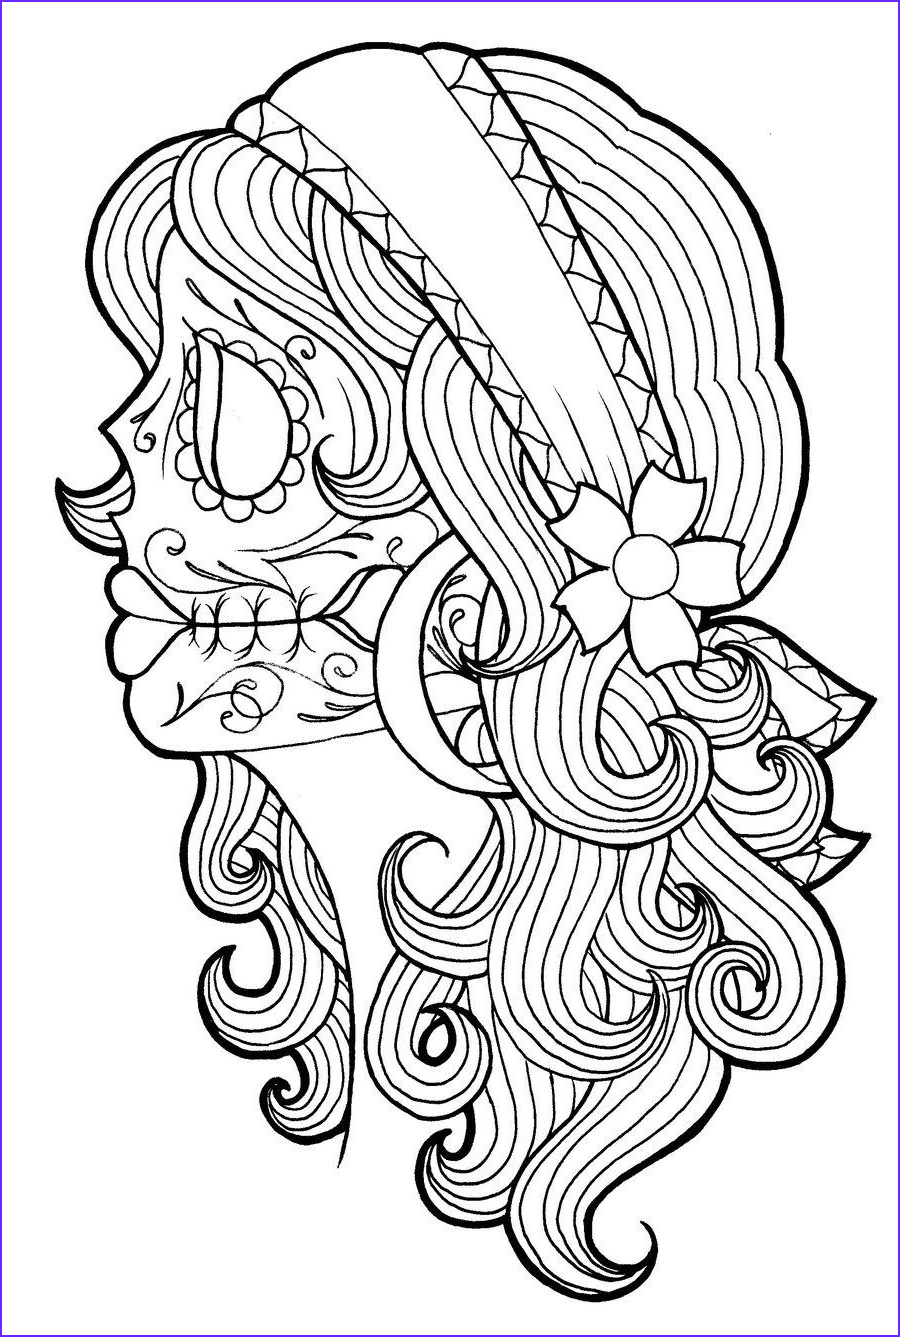 Gypsy Coloring Pages Unique Photos Day Of the Dead Gypsy by Koyasan On Deviantart